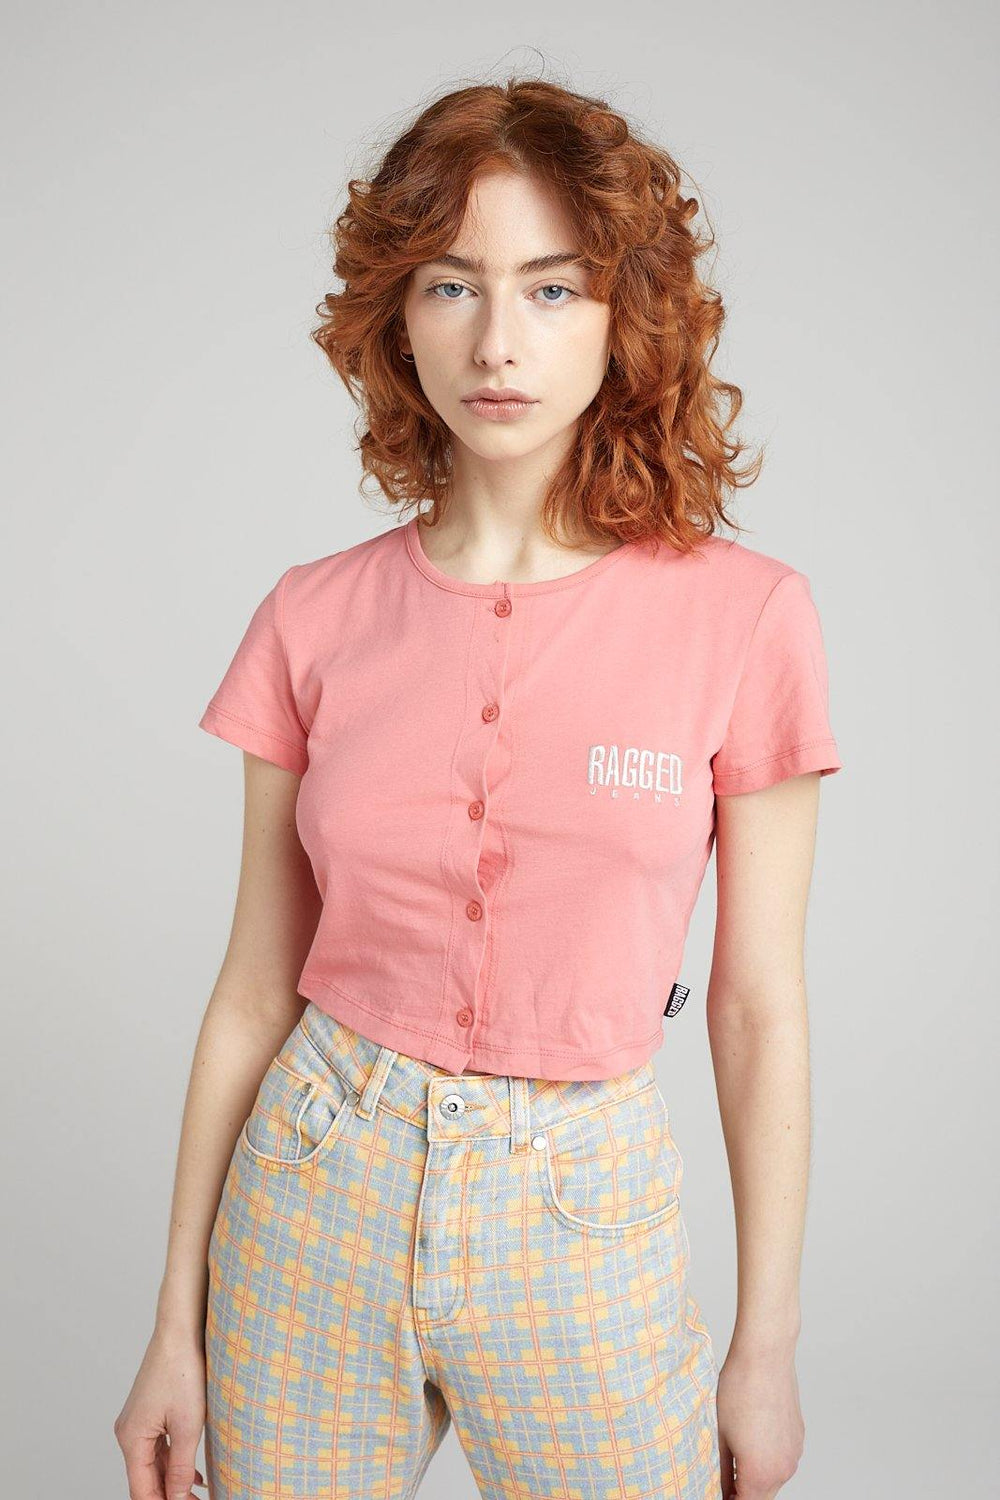 Verve Tee - Pink - The Ragged Priest